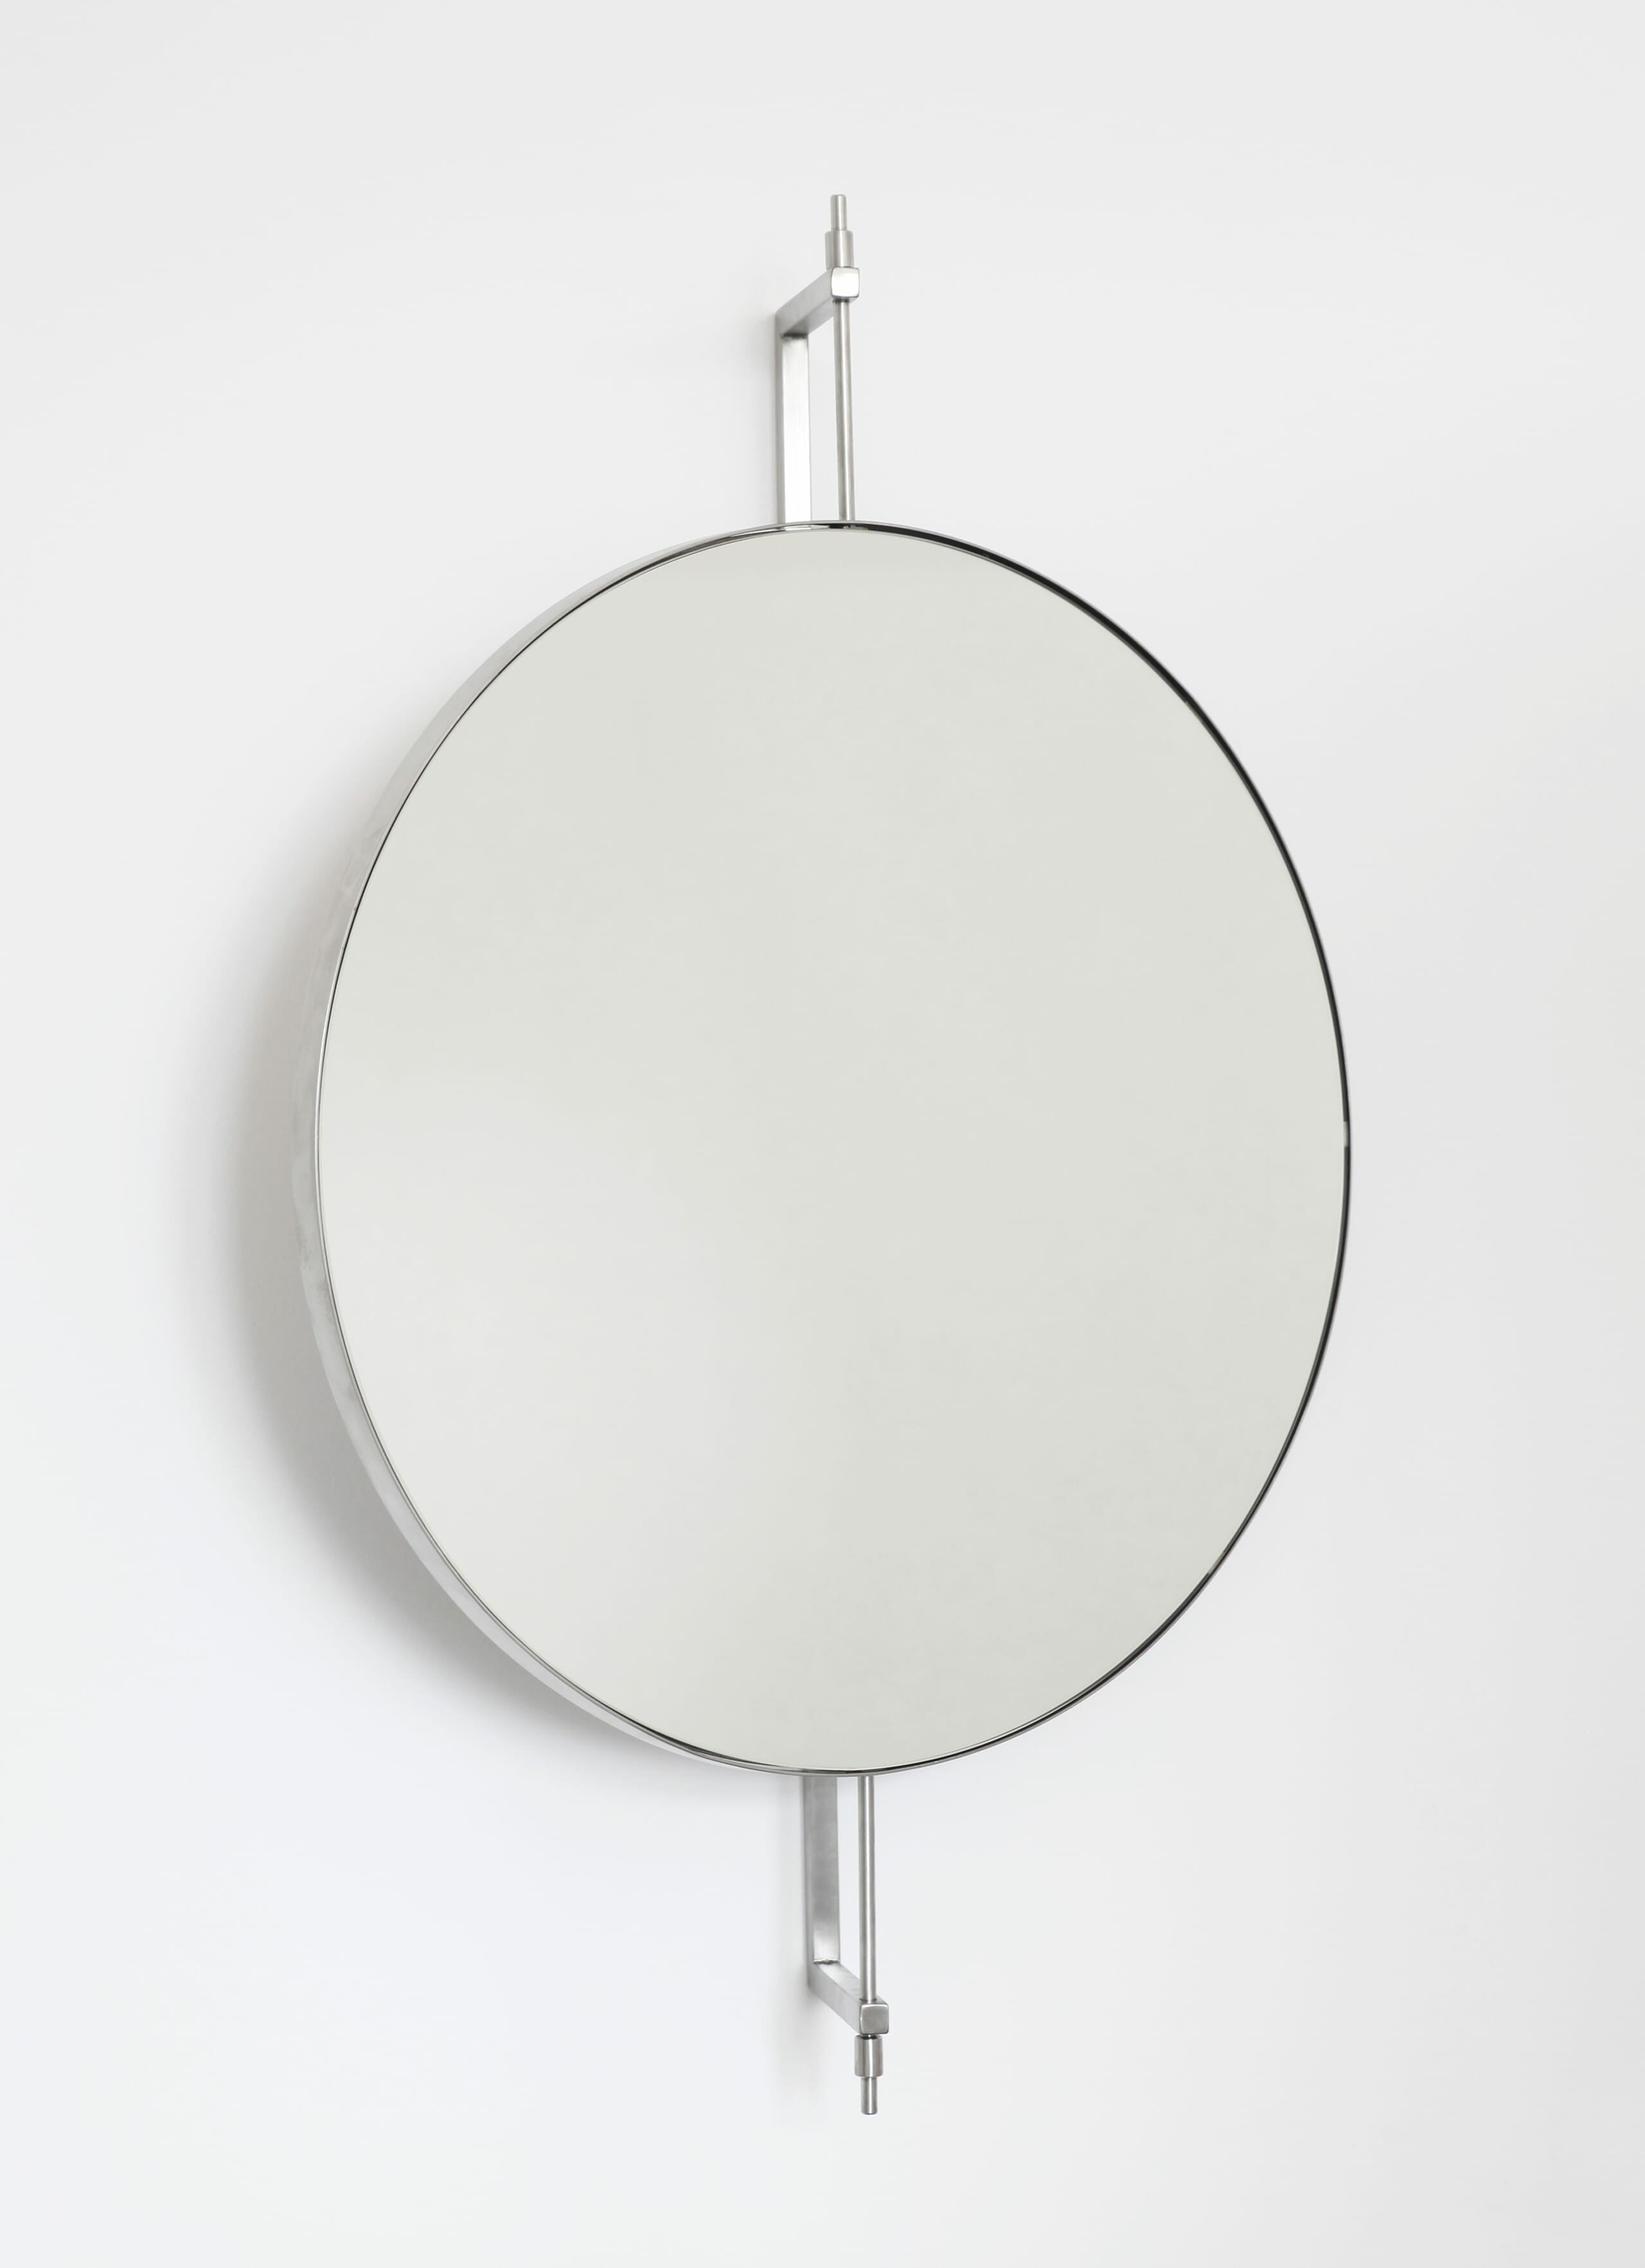 Kristina Dam Studio - Rotating Mirror - Stainless Steel